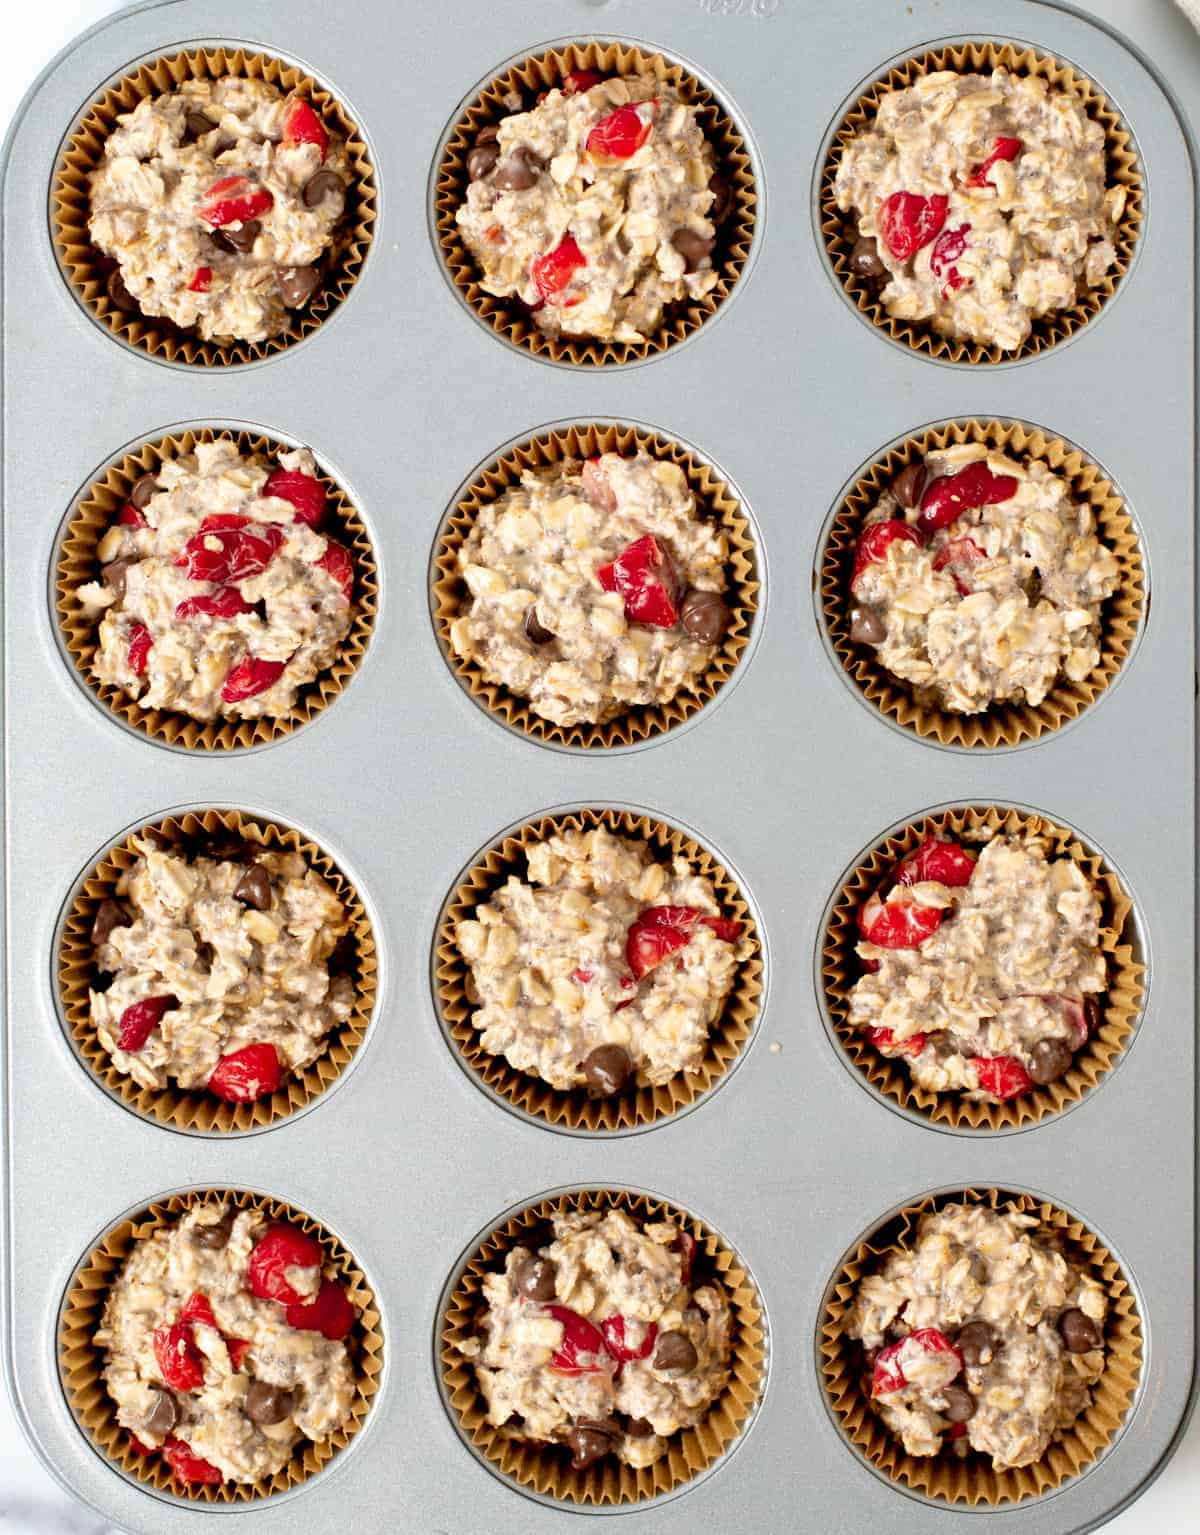 Cherry oat muffins in muffin pan